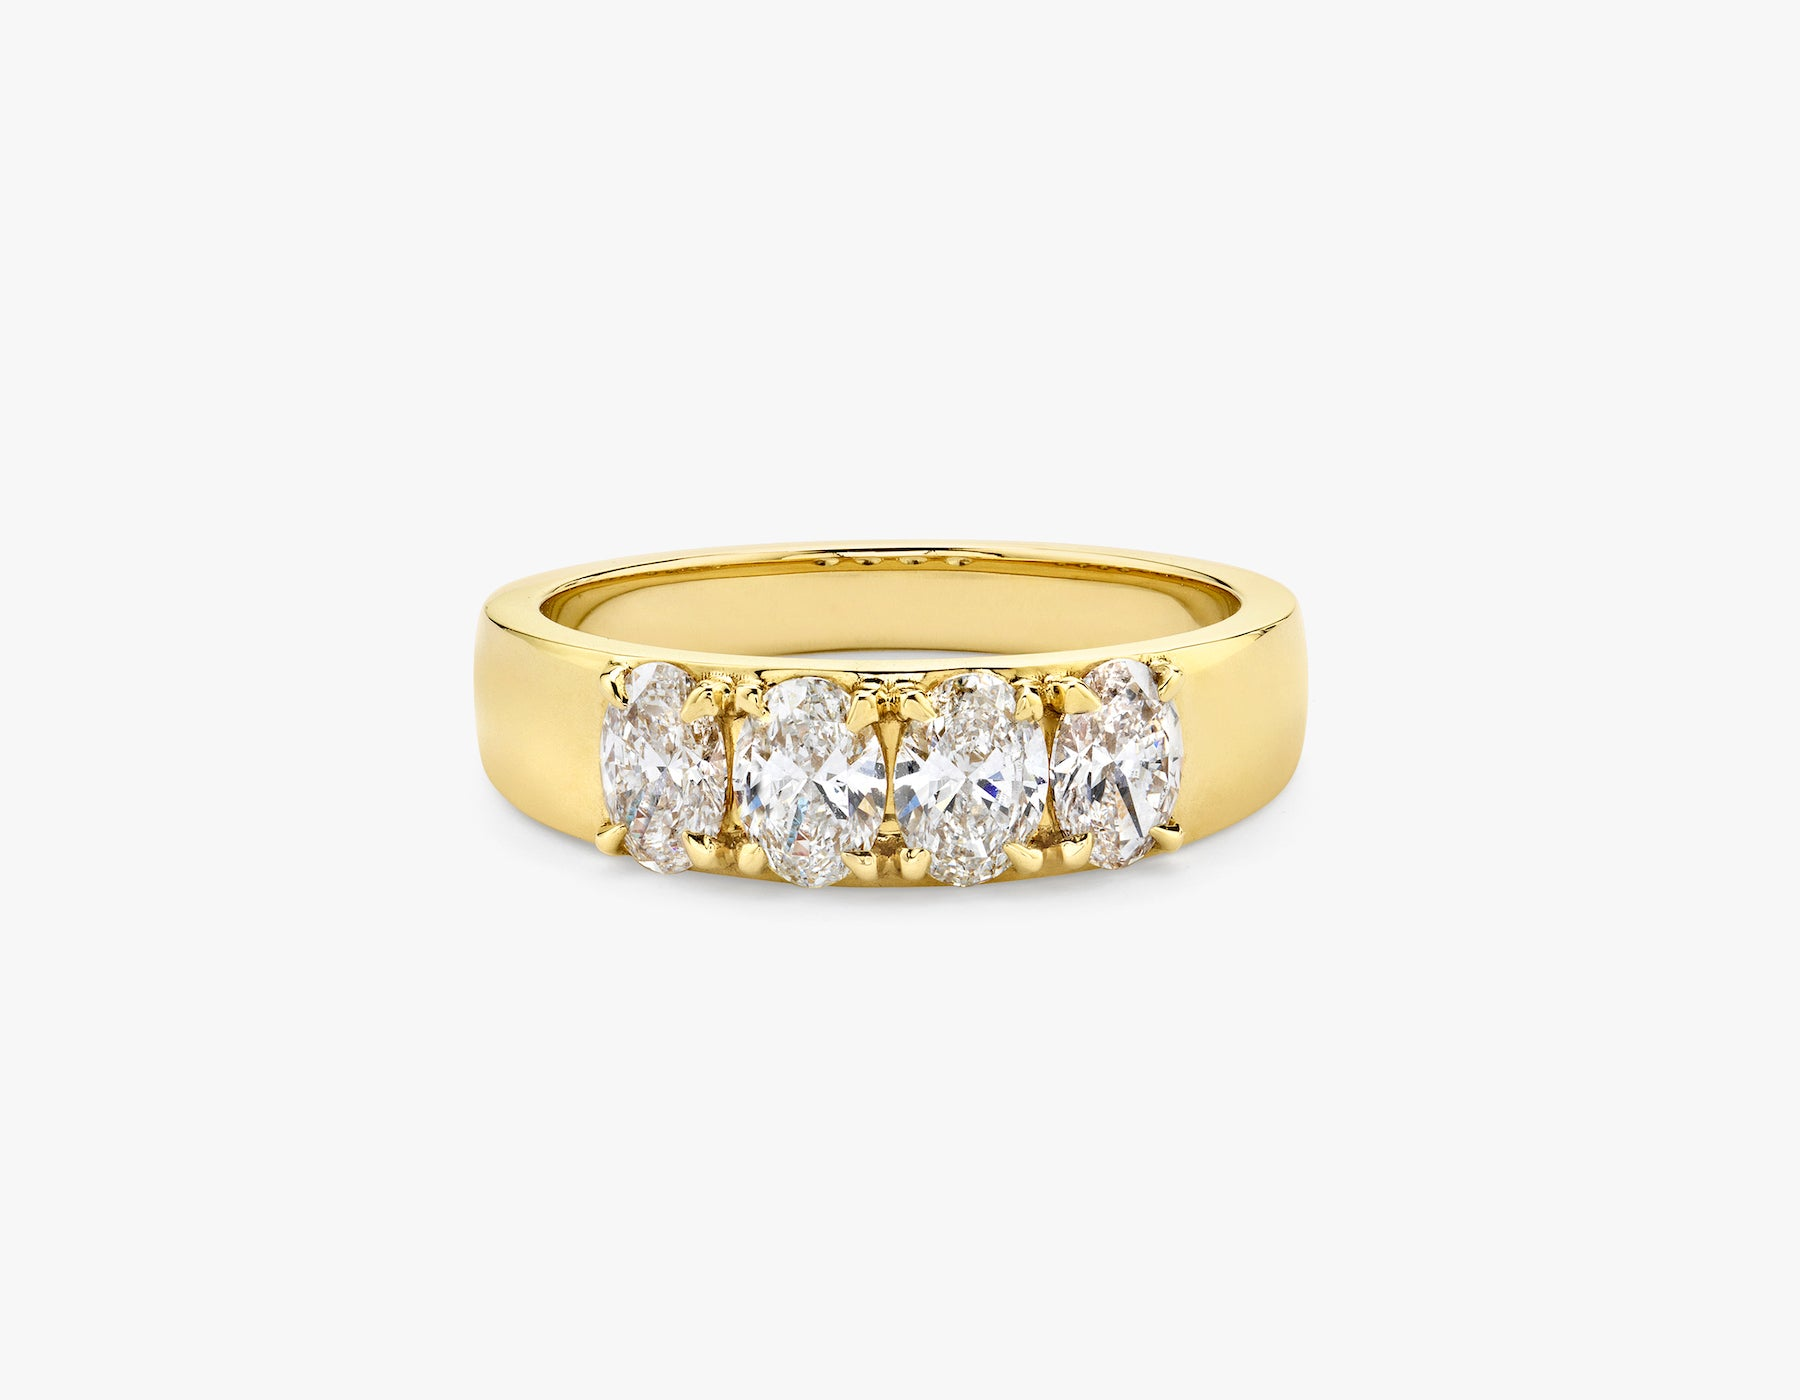 Vrai simple minimalist Oval Diamond Tetrad Band .25ct Oval Diamond Ring, 14K Yellow Gold